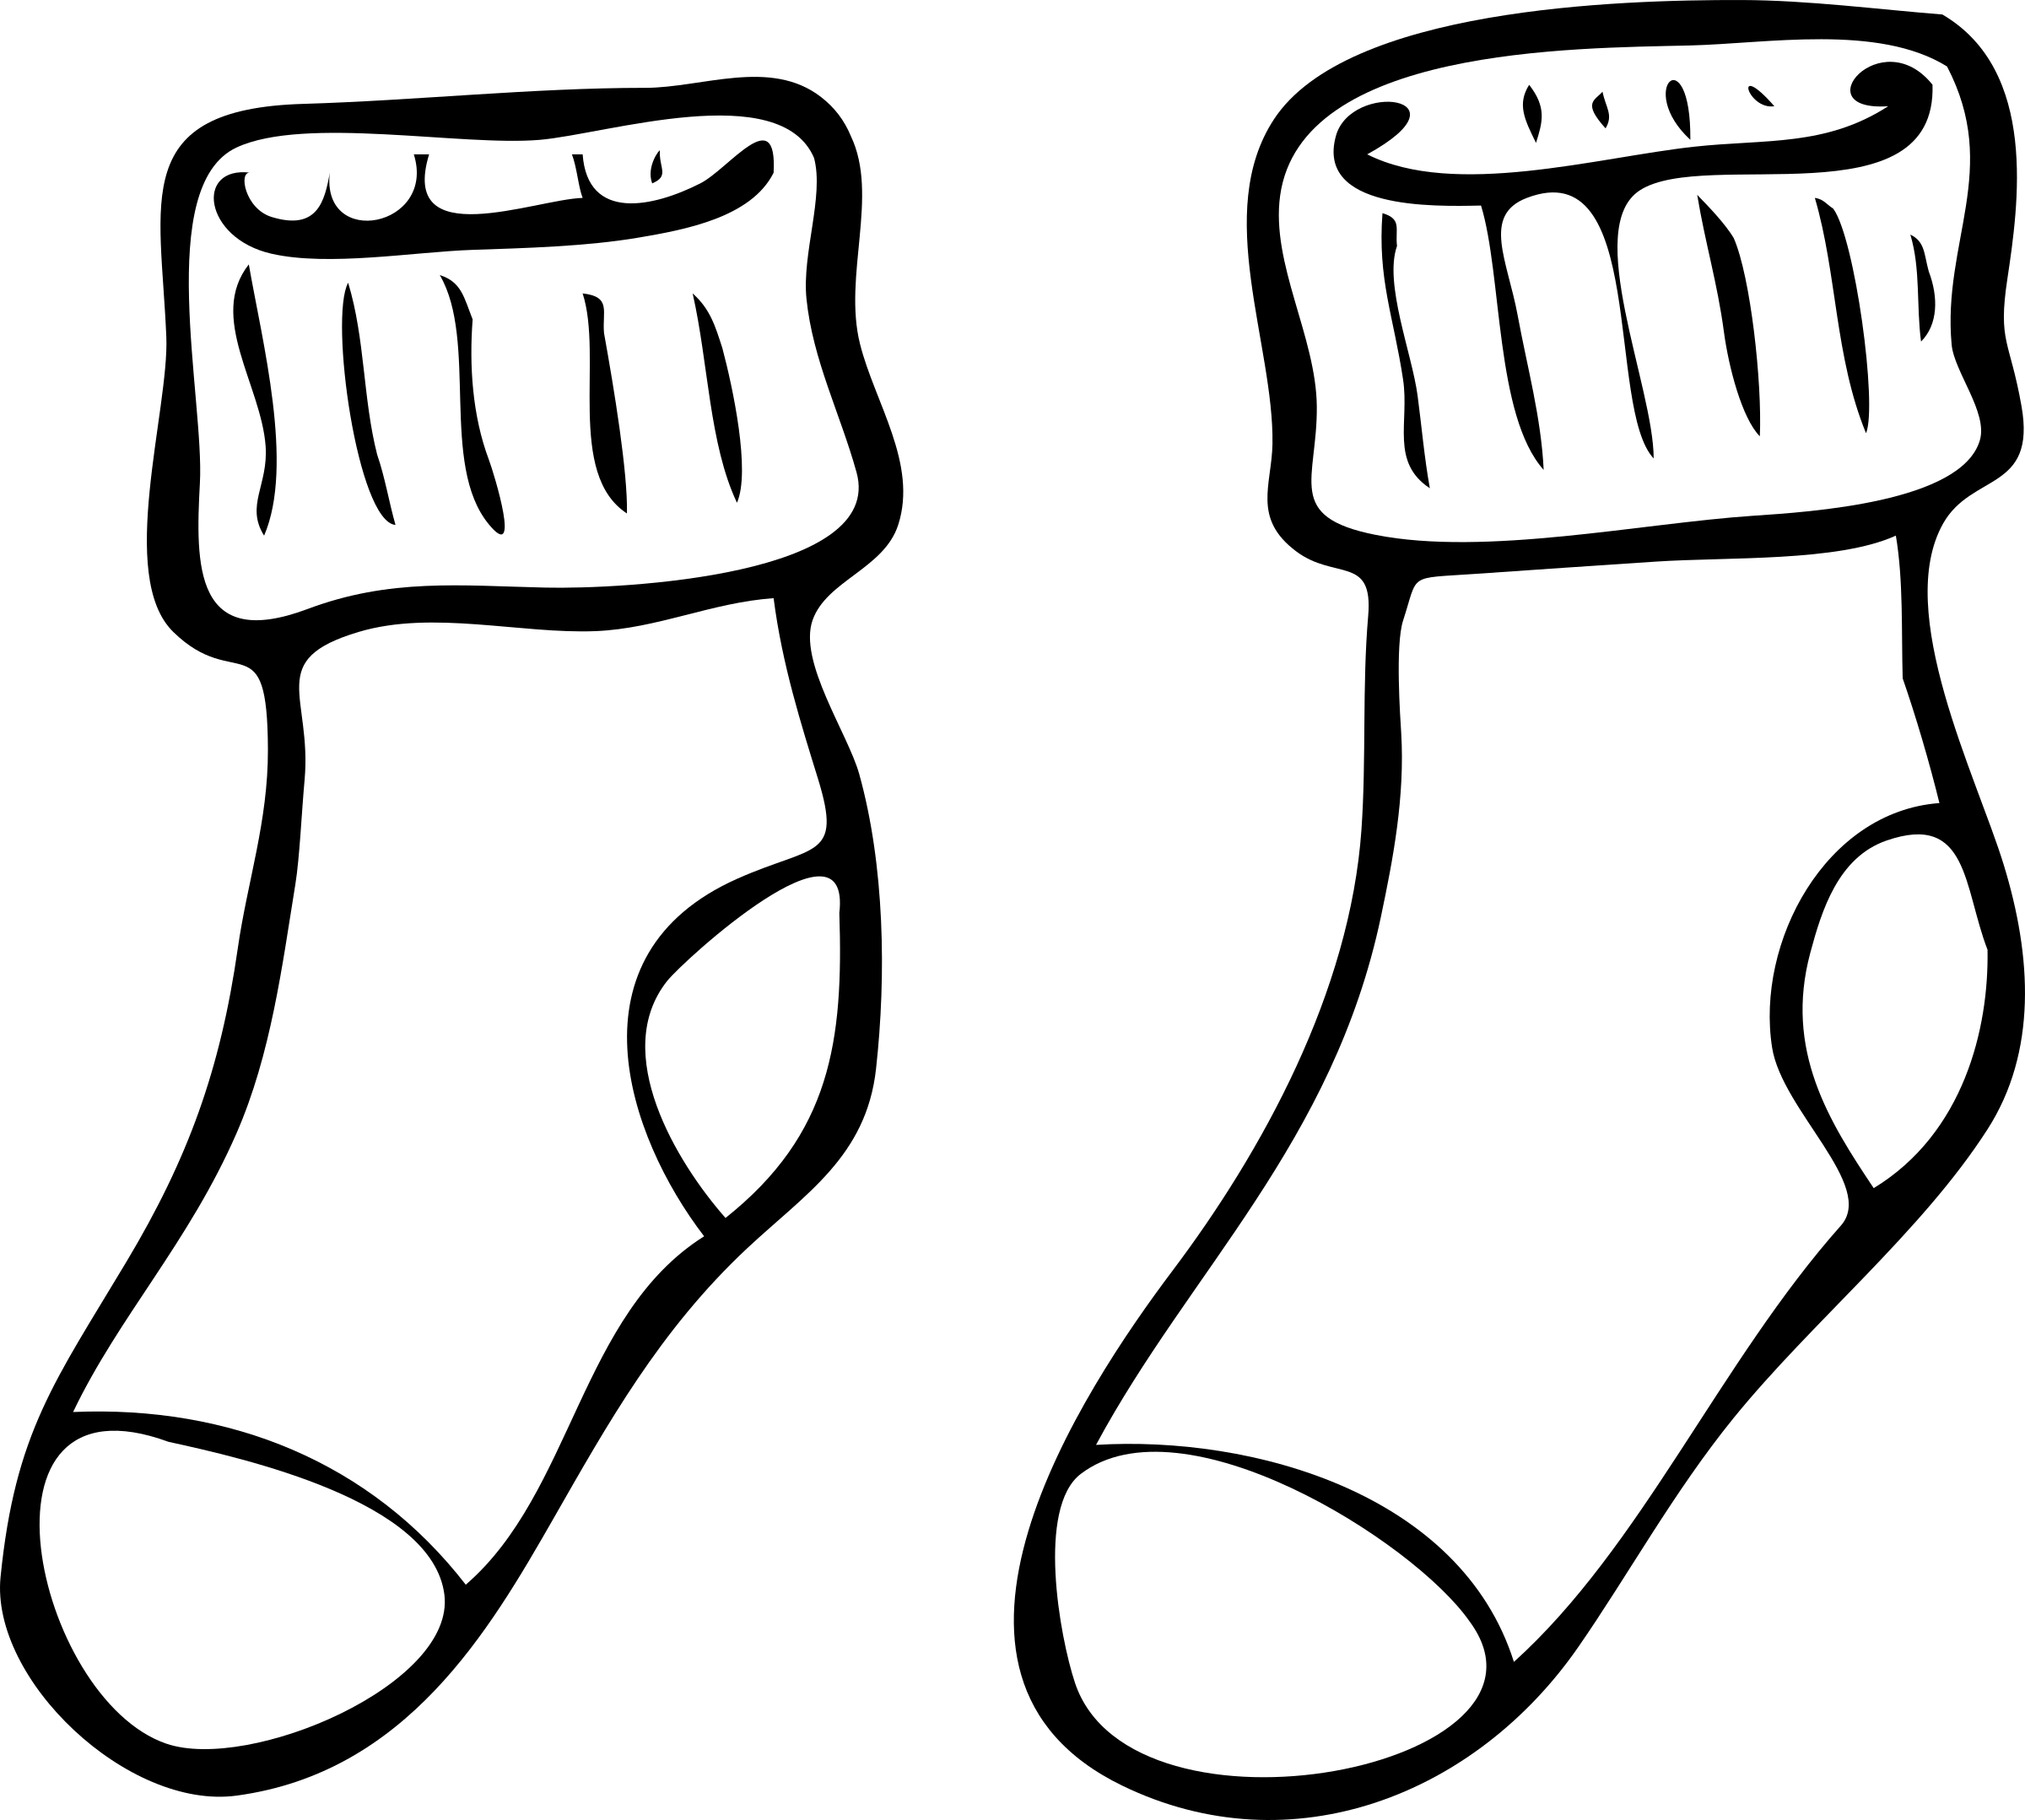 graphic transparent library Stocking black and white clipart. Architetto calzettoni big image